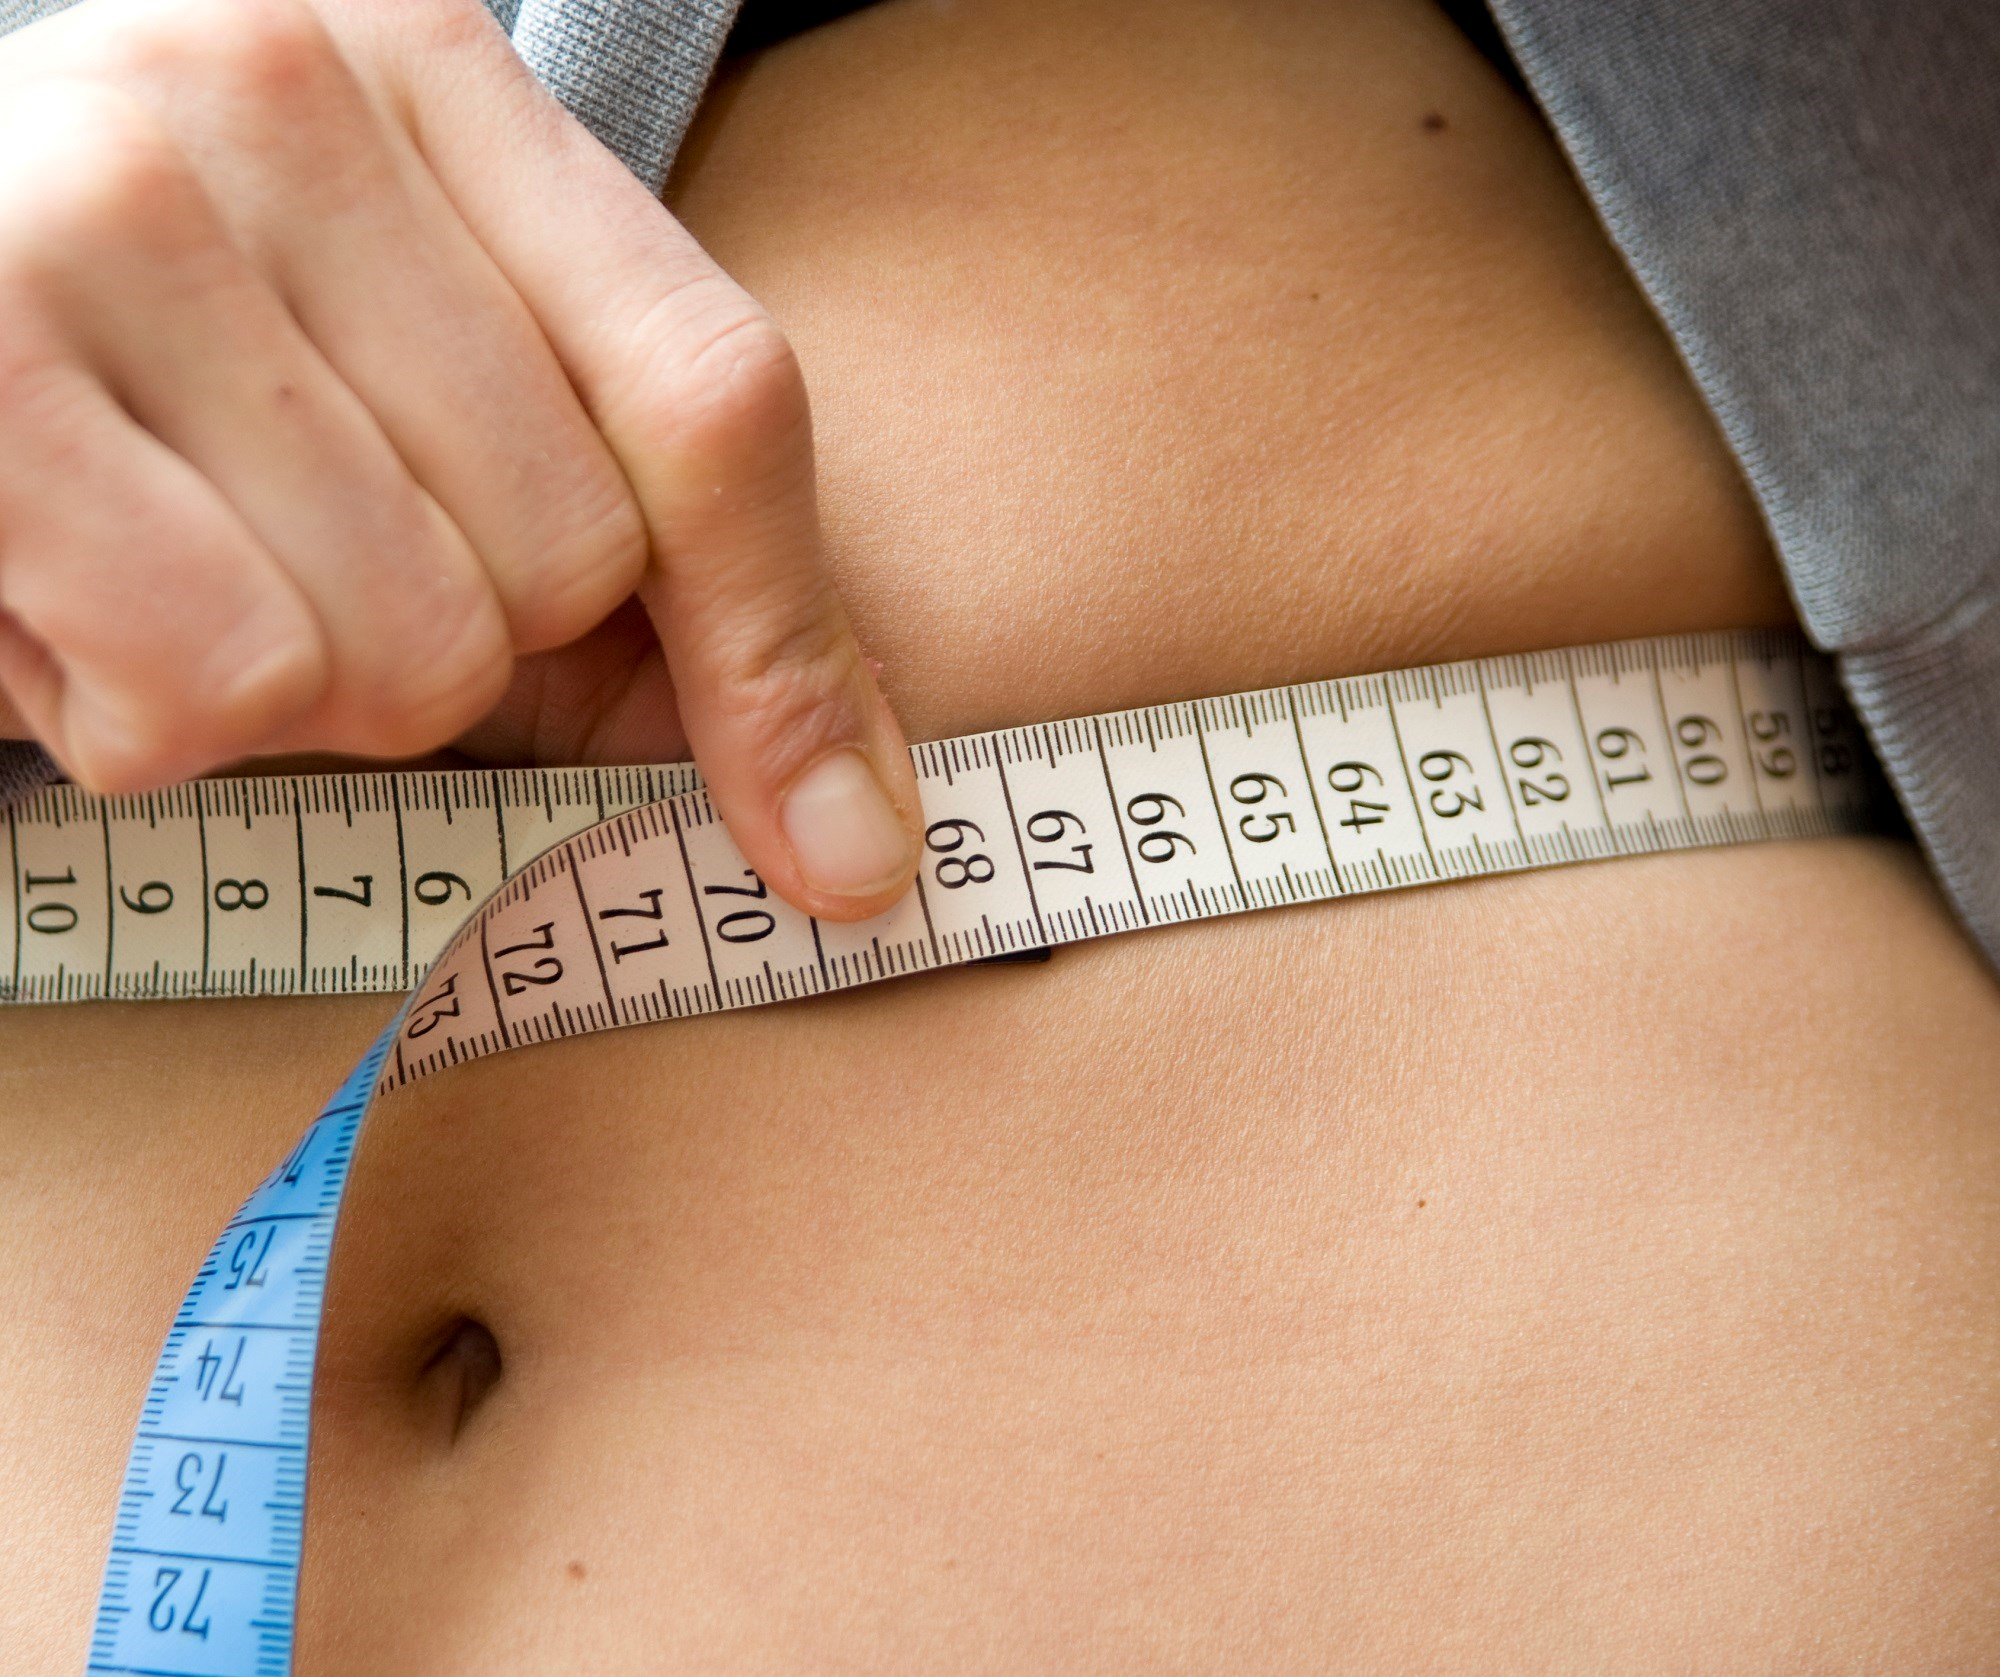 CDC Statistics Report Indicates Increased Waist Size, BMI for Many US Adults